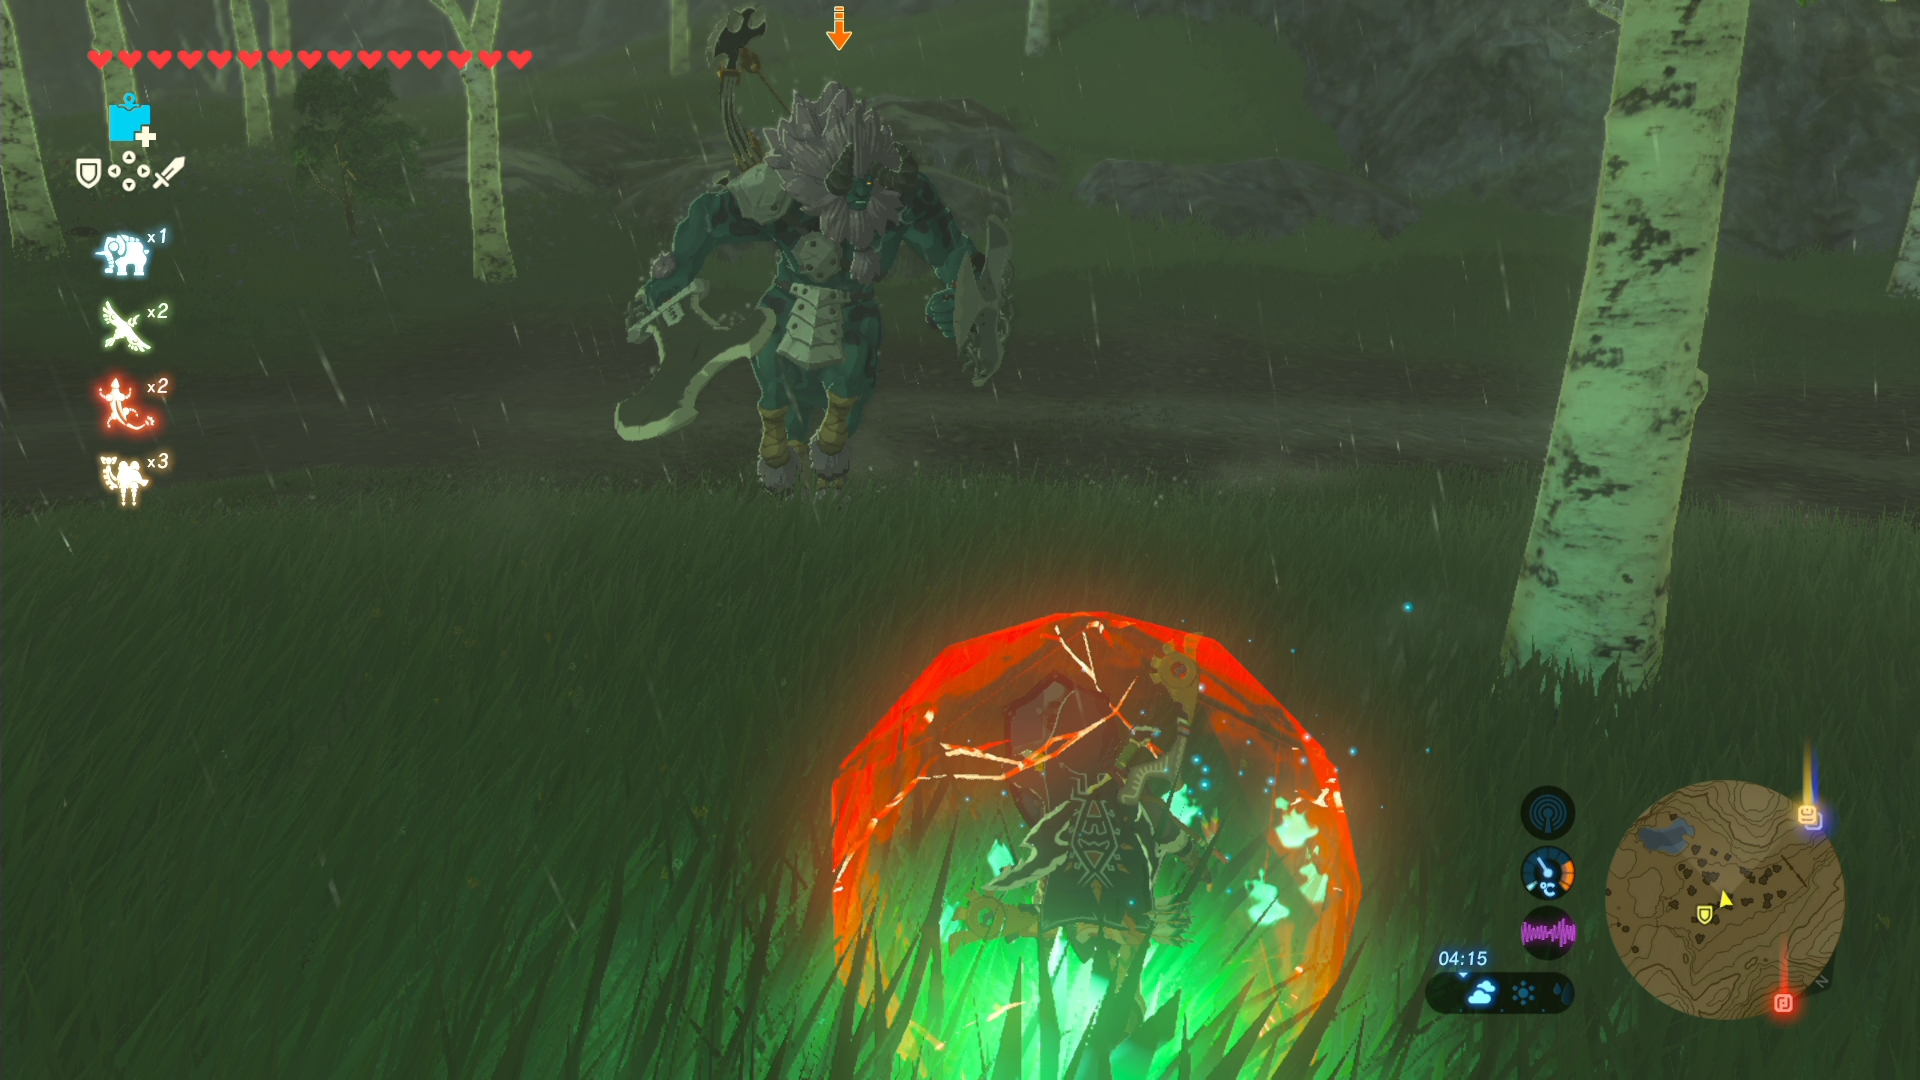 The Legend Of Zelda Breath Of The Wild Guide How To Beat The Open World Sub Bosses Rpg Site